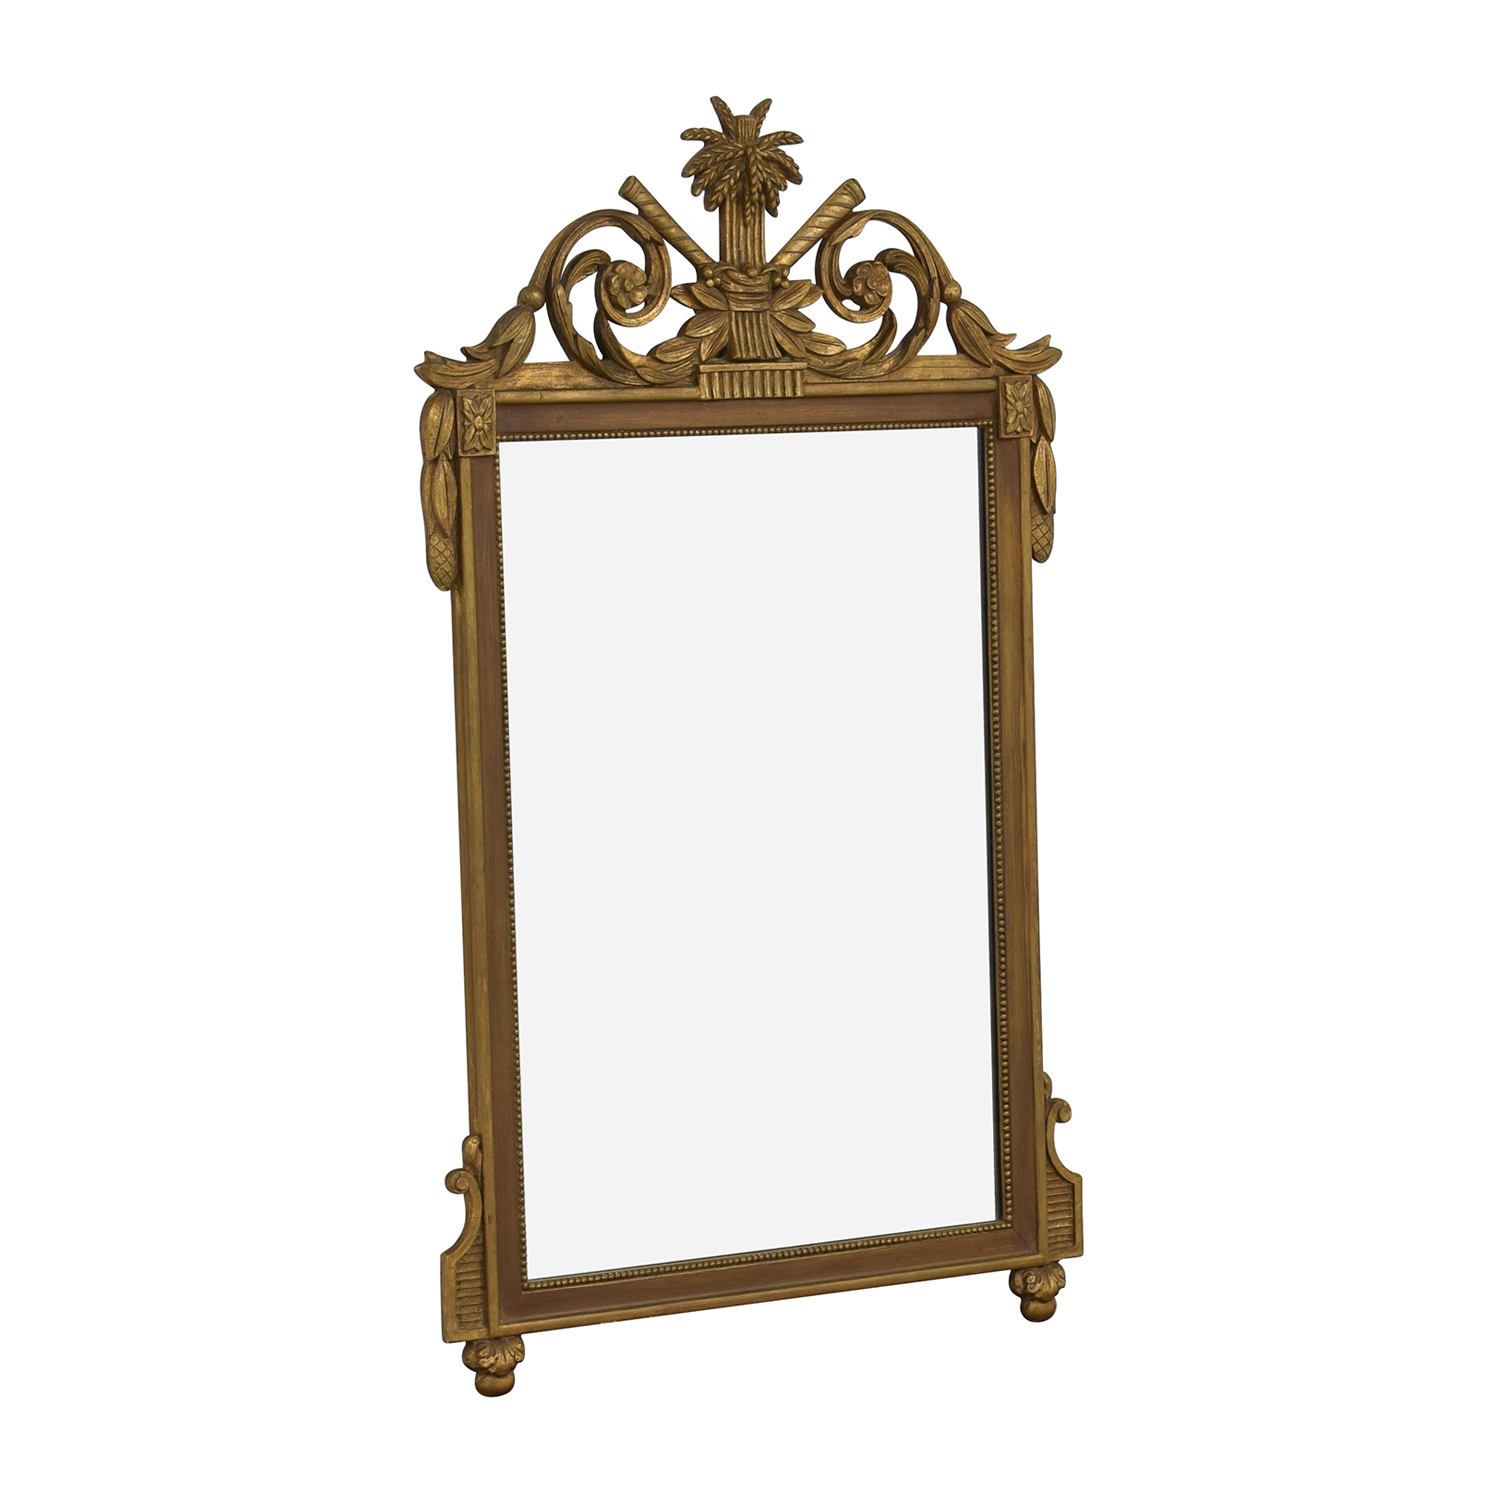 Vintage French Regency Giltwood Mirror Mirrors